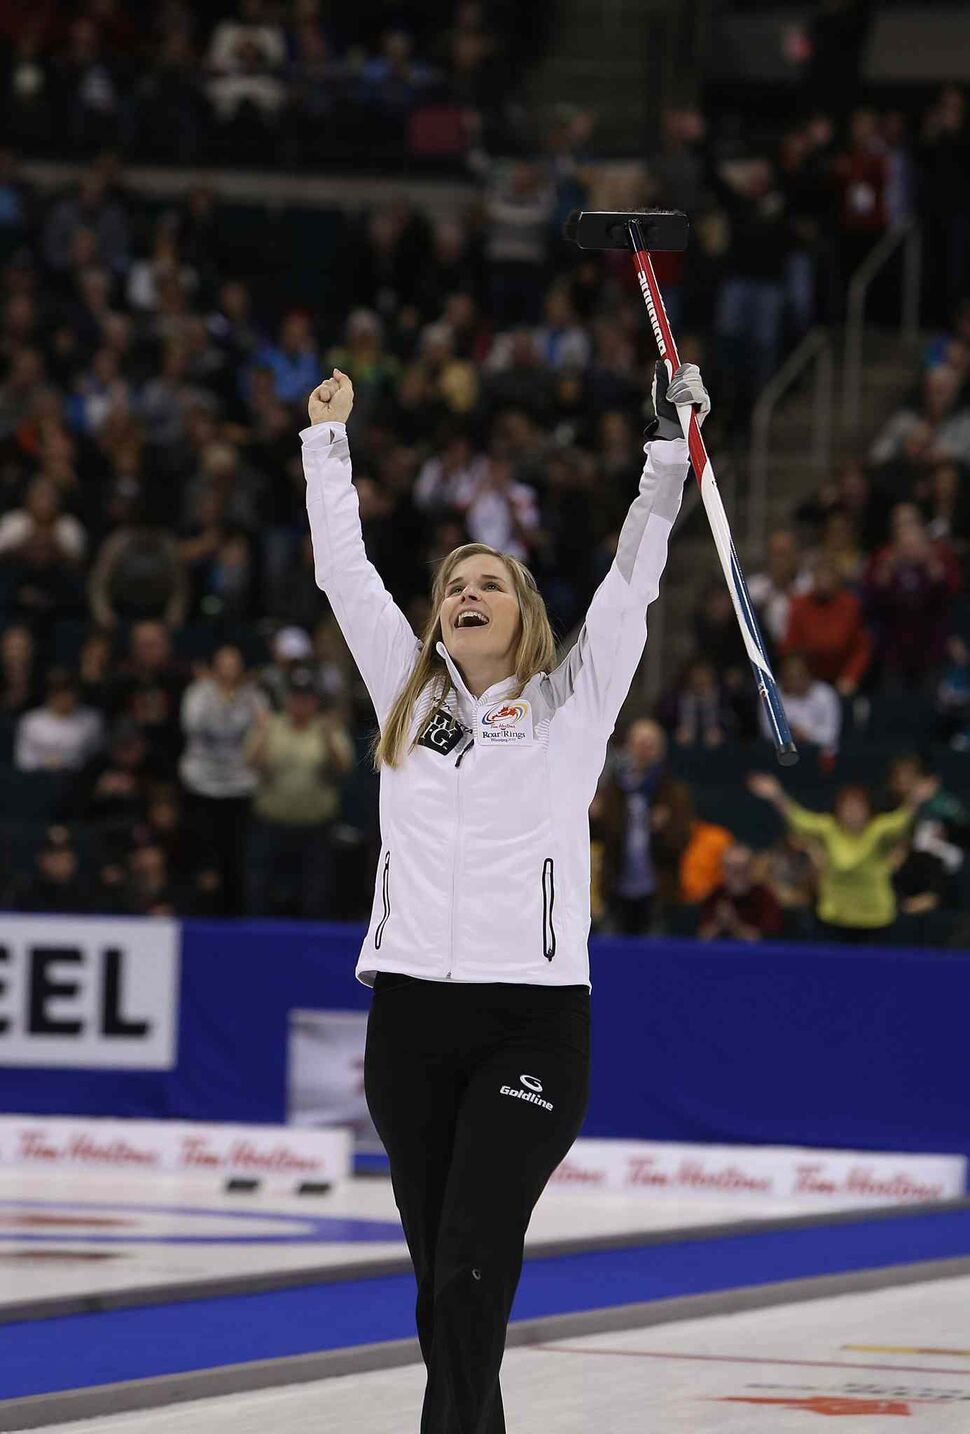 Jennifer Jones celebrates after defeating Sherry Middaugh in the women's final of Roar of the Rings curling at the MTS Centre Saturday. (Jason Halstead / Winnipeg Free Press)